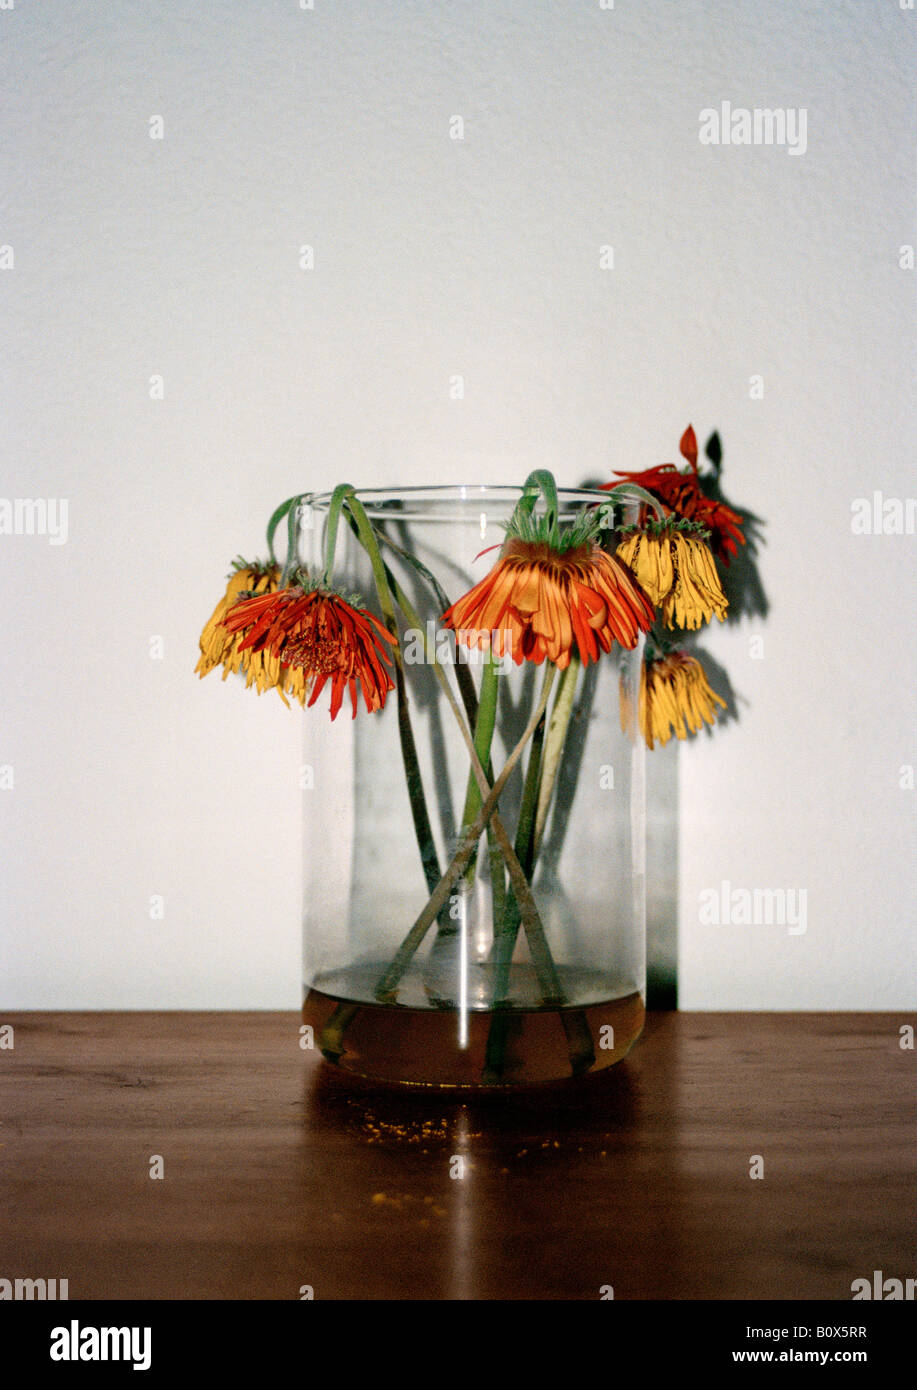 Wilting flowers in a vase stock photo royalty free image wilting flowers in a vase reviewsmspy